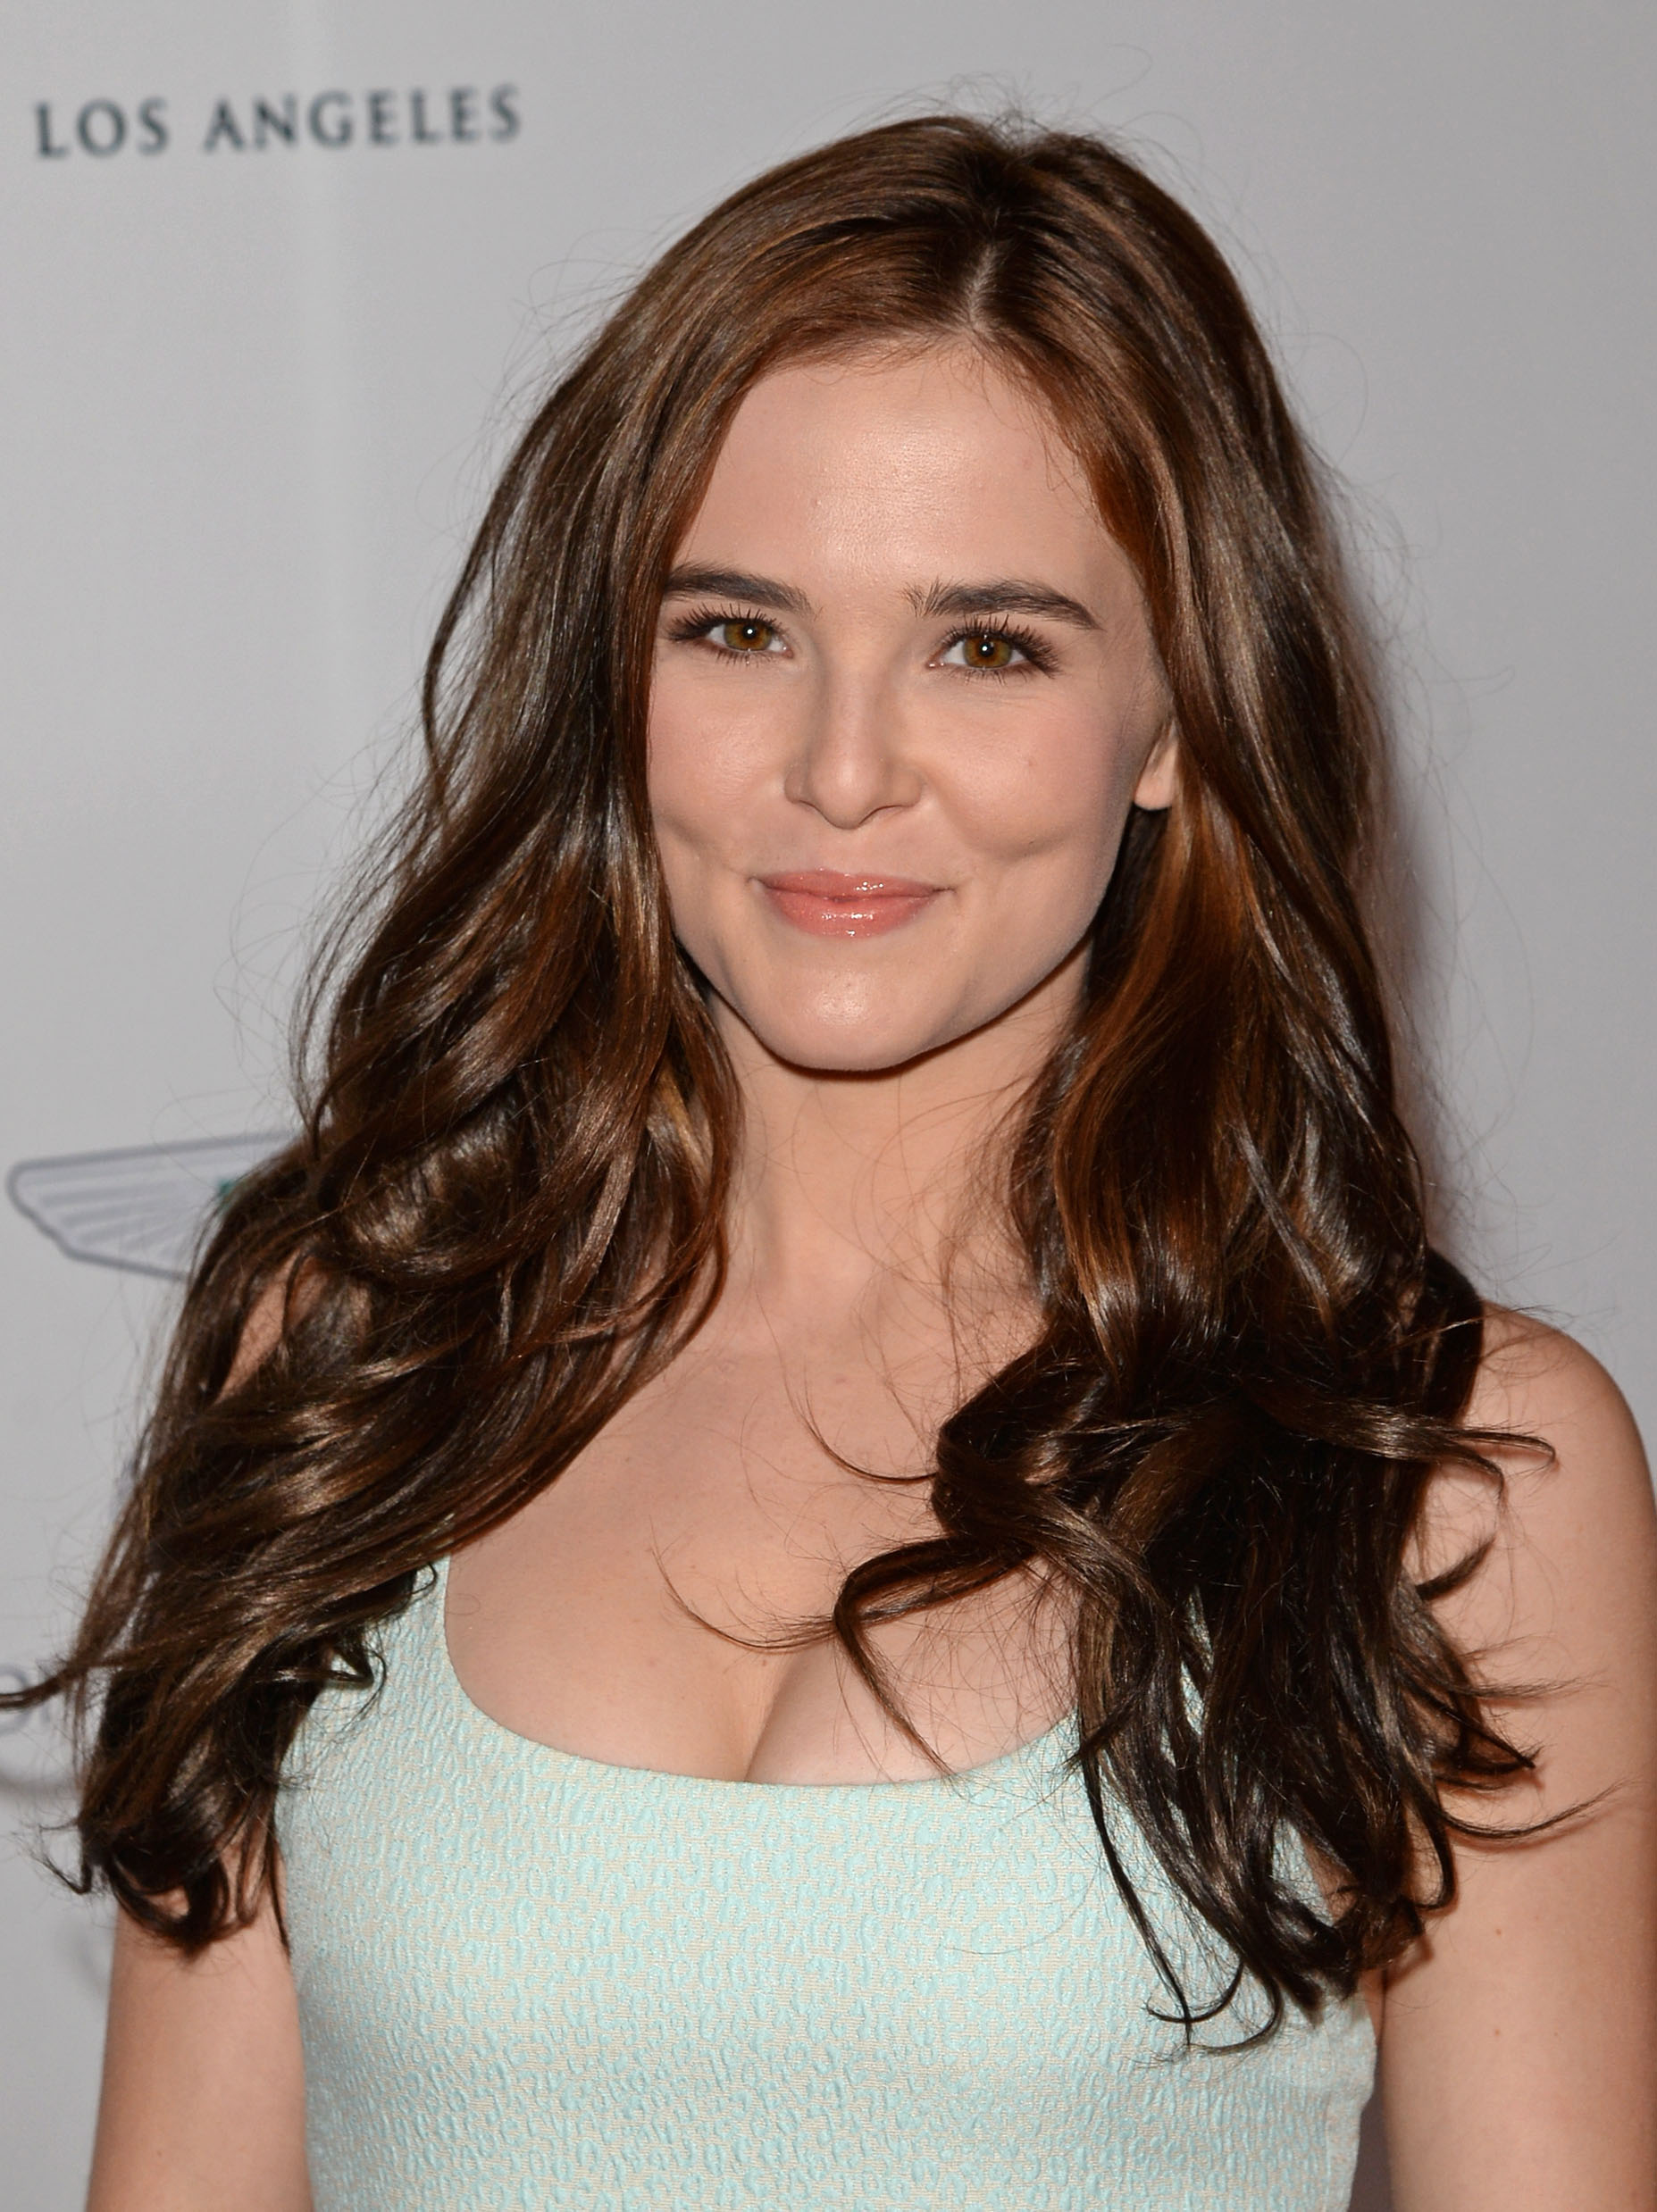 zoey deutch tumblrzoey deutch gif, zoey deutch tumblr, zoey deutch vk, zoey deutch and avan jogia, zoey deutch gif hunt, zoey deutch photoshoot, zoey deutch png, zoey deutch фото, zoey deutch gallery, zoey deutch site, zoey deutch screencaps, zoey deutch films, zoey deutch gif tumblr, zoey deutch вк, zoey deutch wallpaper, zoey deutch wikipedia, zoey deutch icons, zoey deutch фильмы, zoey deutch source, zoey deutch interview